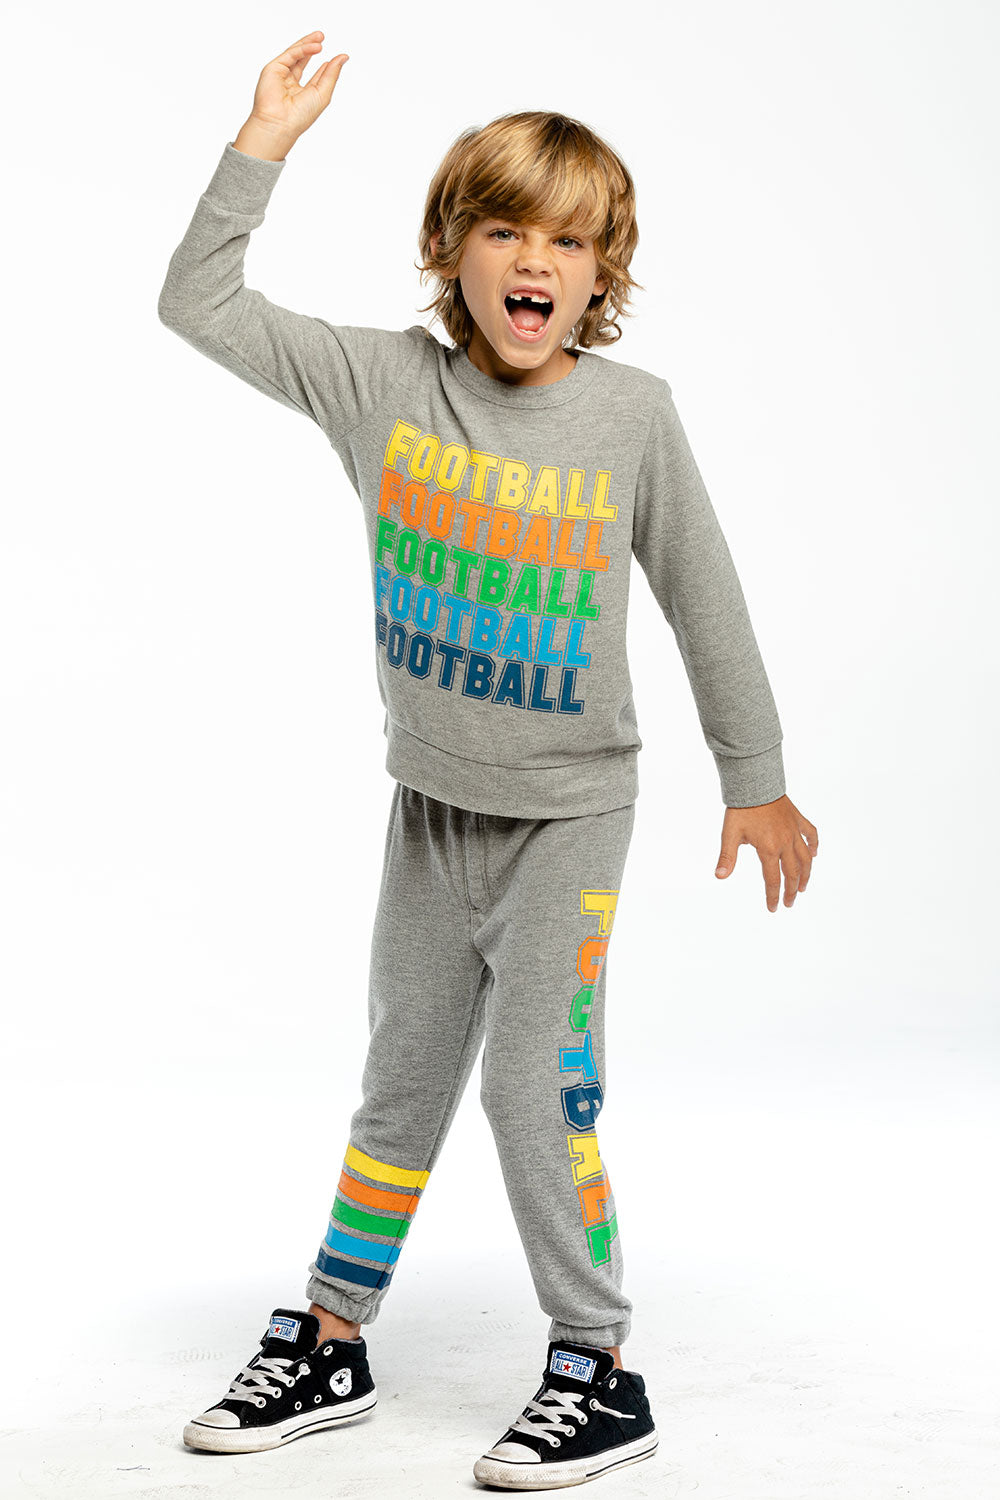 Football Pants BOYS chaserbrand4.myshopify.com